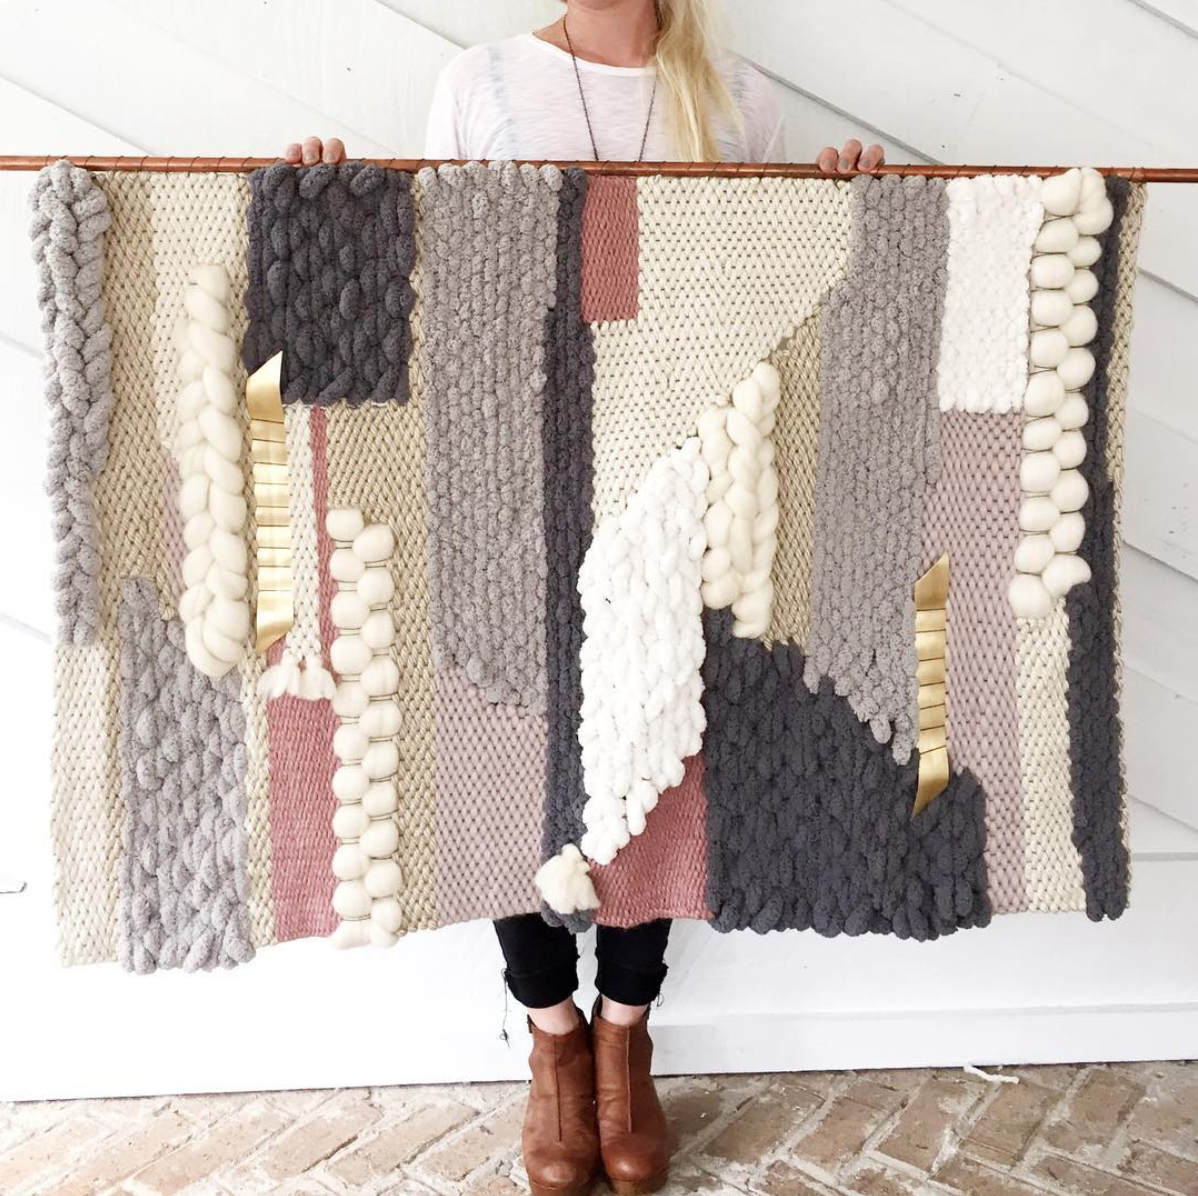 Erin  of  Sunwoven  is so incredibly talented it literally blows my mind. AND, on top of that she is a bad ass chick that shares my love of interior decorating.